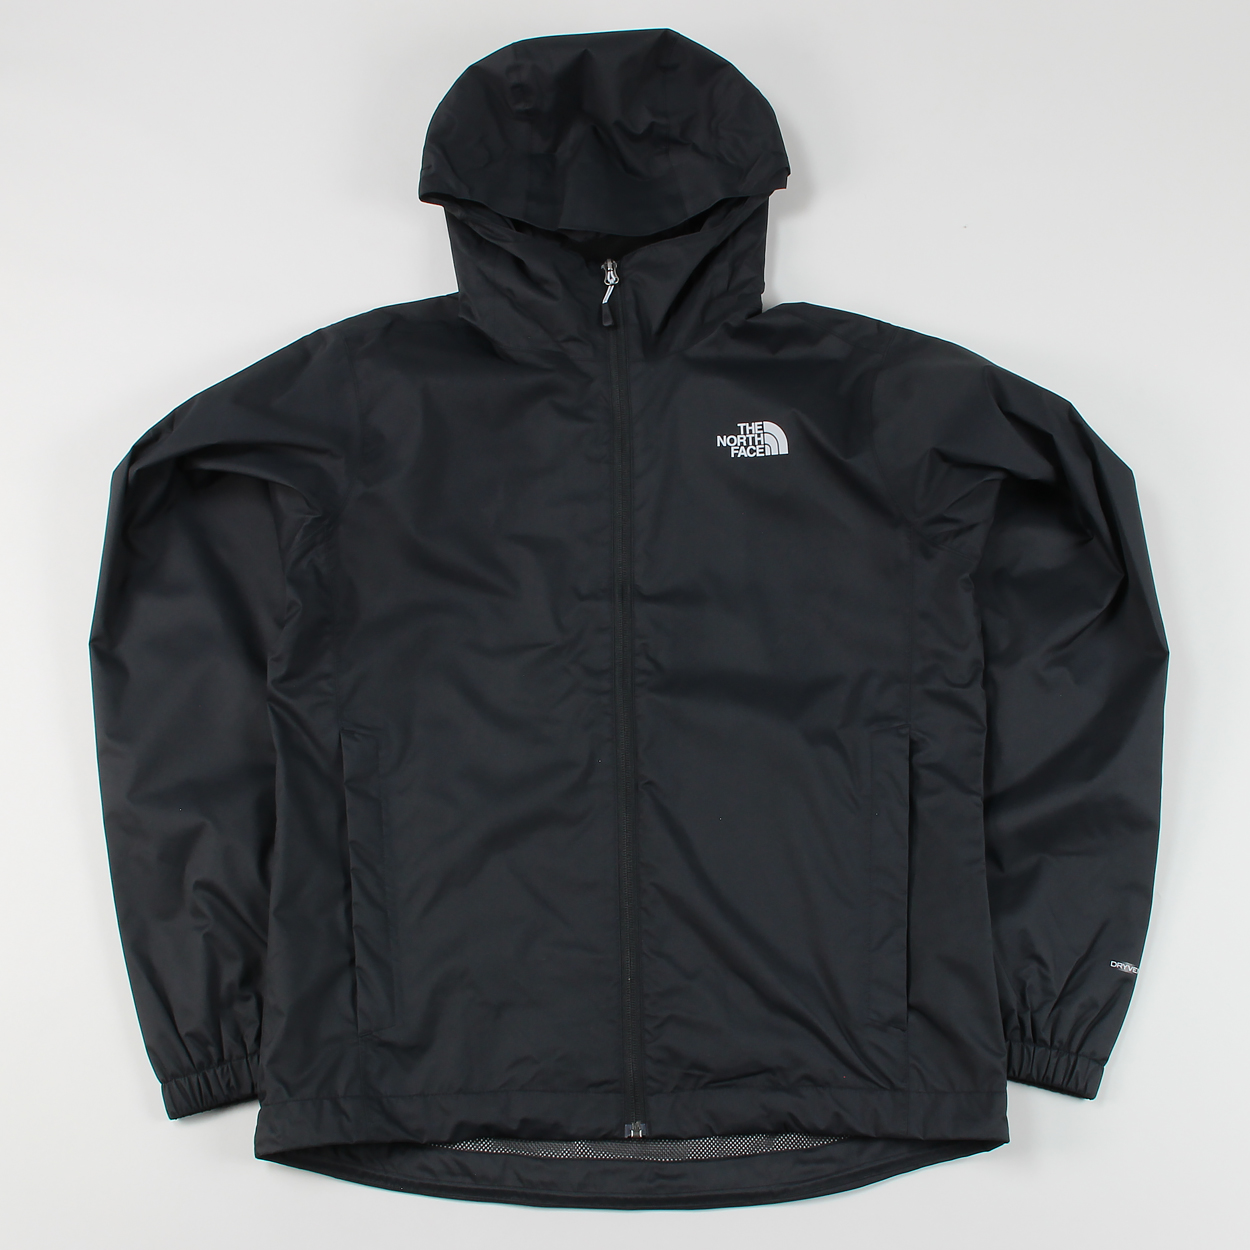 136575cafdd9 The North Face Mens Full Zip Quest Outdoor DryVent Jacket Black £66.50